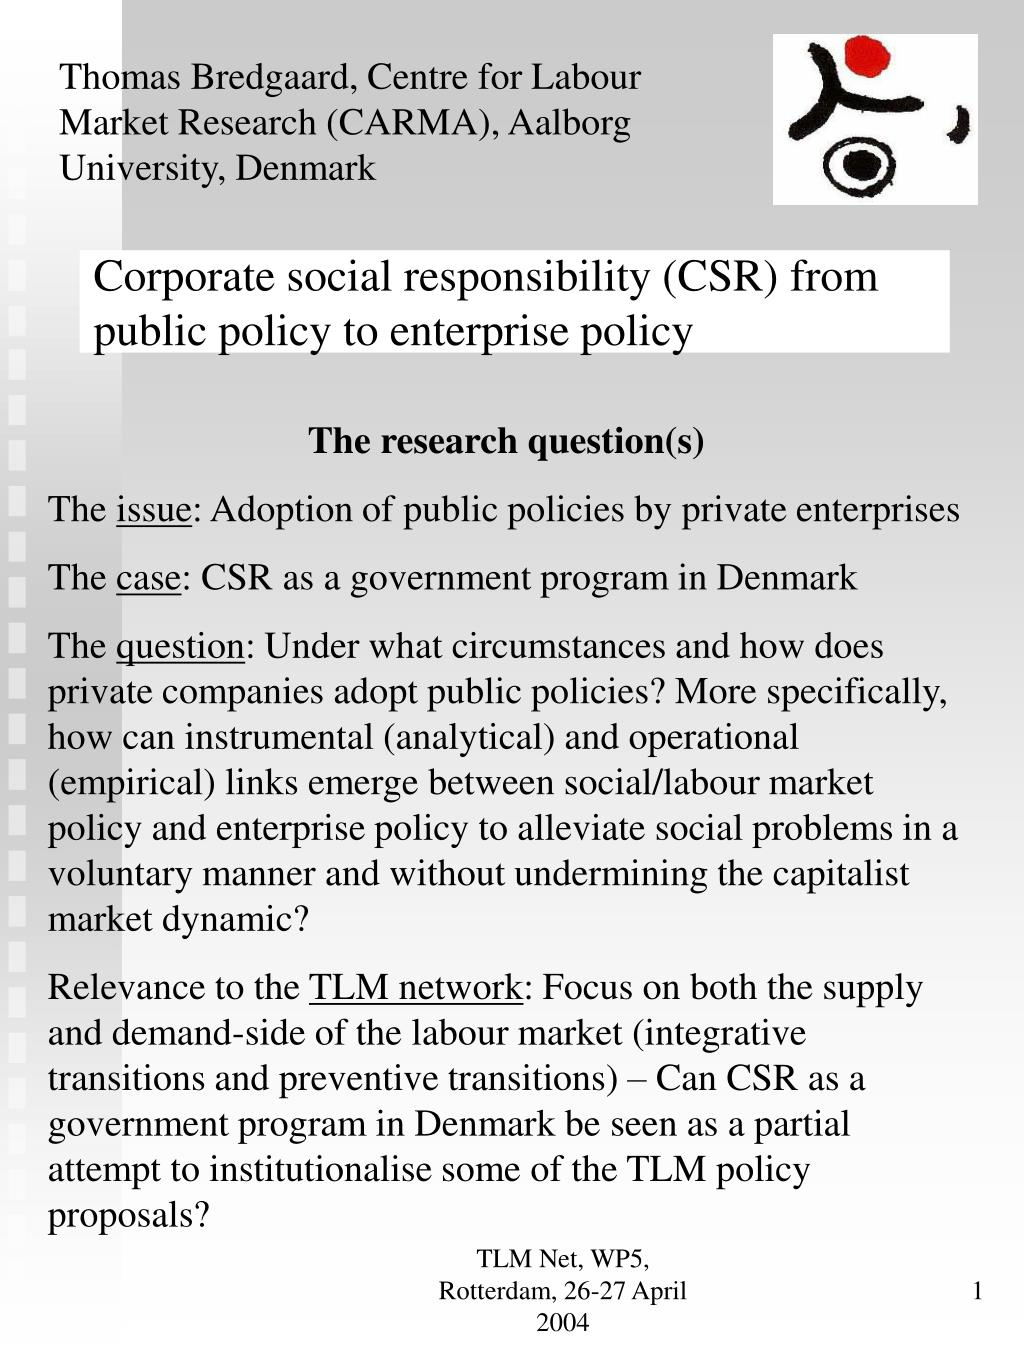 Corporate social responsibility (CSR) from public policy to enterprise policy